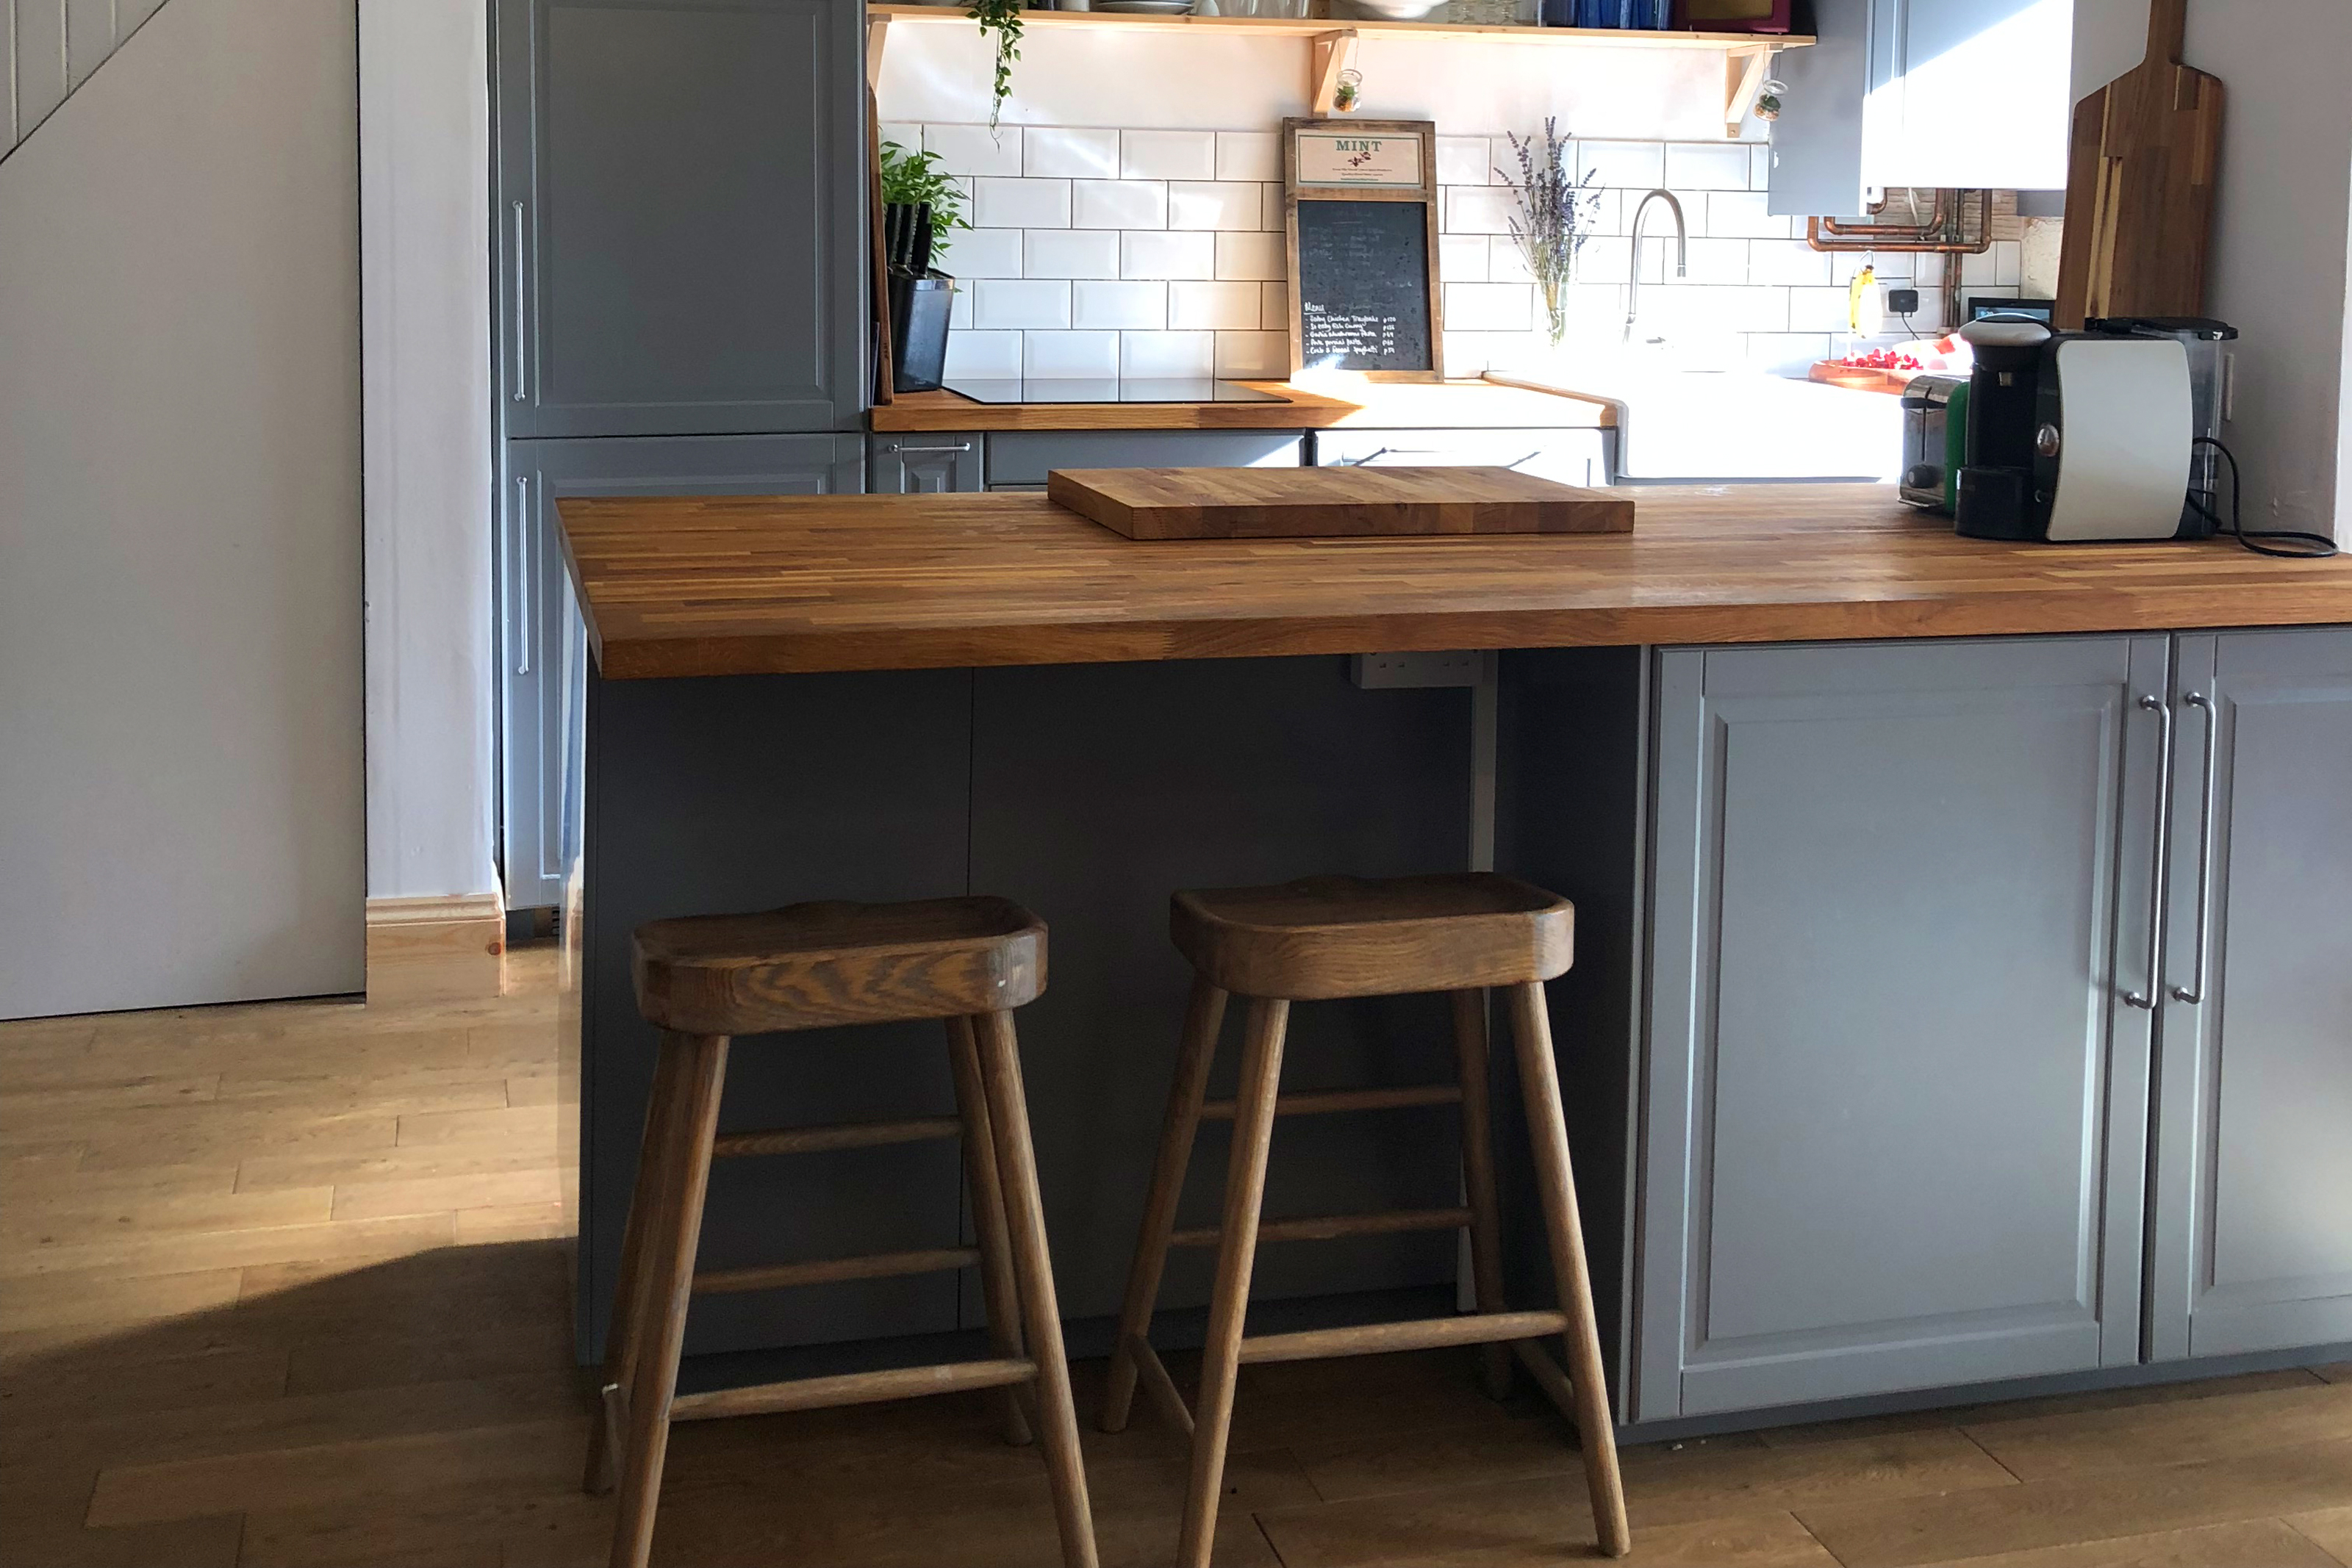 Gray cabinets with new butcher block counter tops